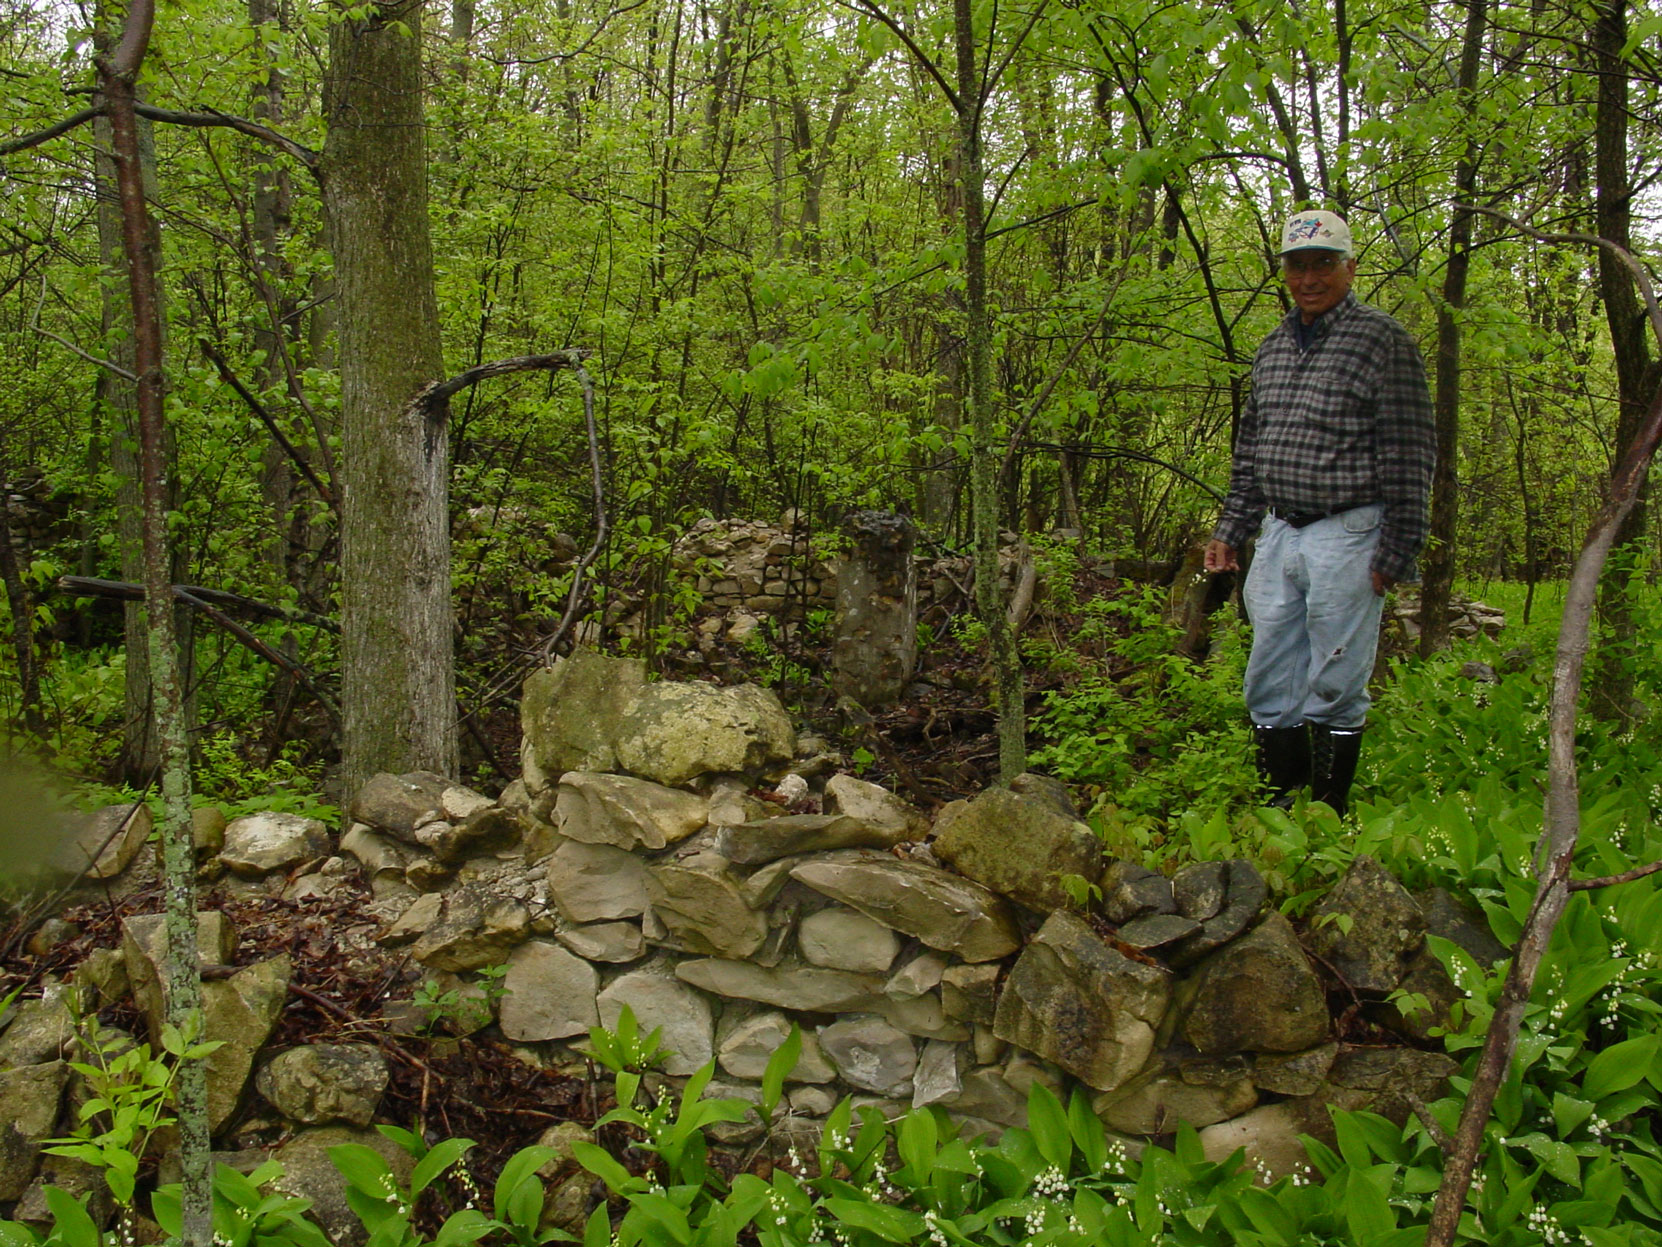 Landowner Murray Noble in what are believed to be the ruins of the Butchart's house at the Shallow Lkae factory site. Ruins of the Owen Sound Portland Cement Company factory, Shallow Lake, Ontario, 2003. (photo by author)